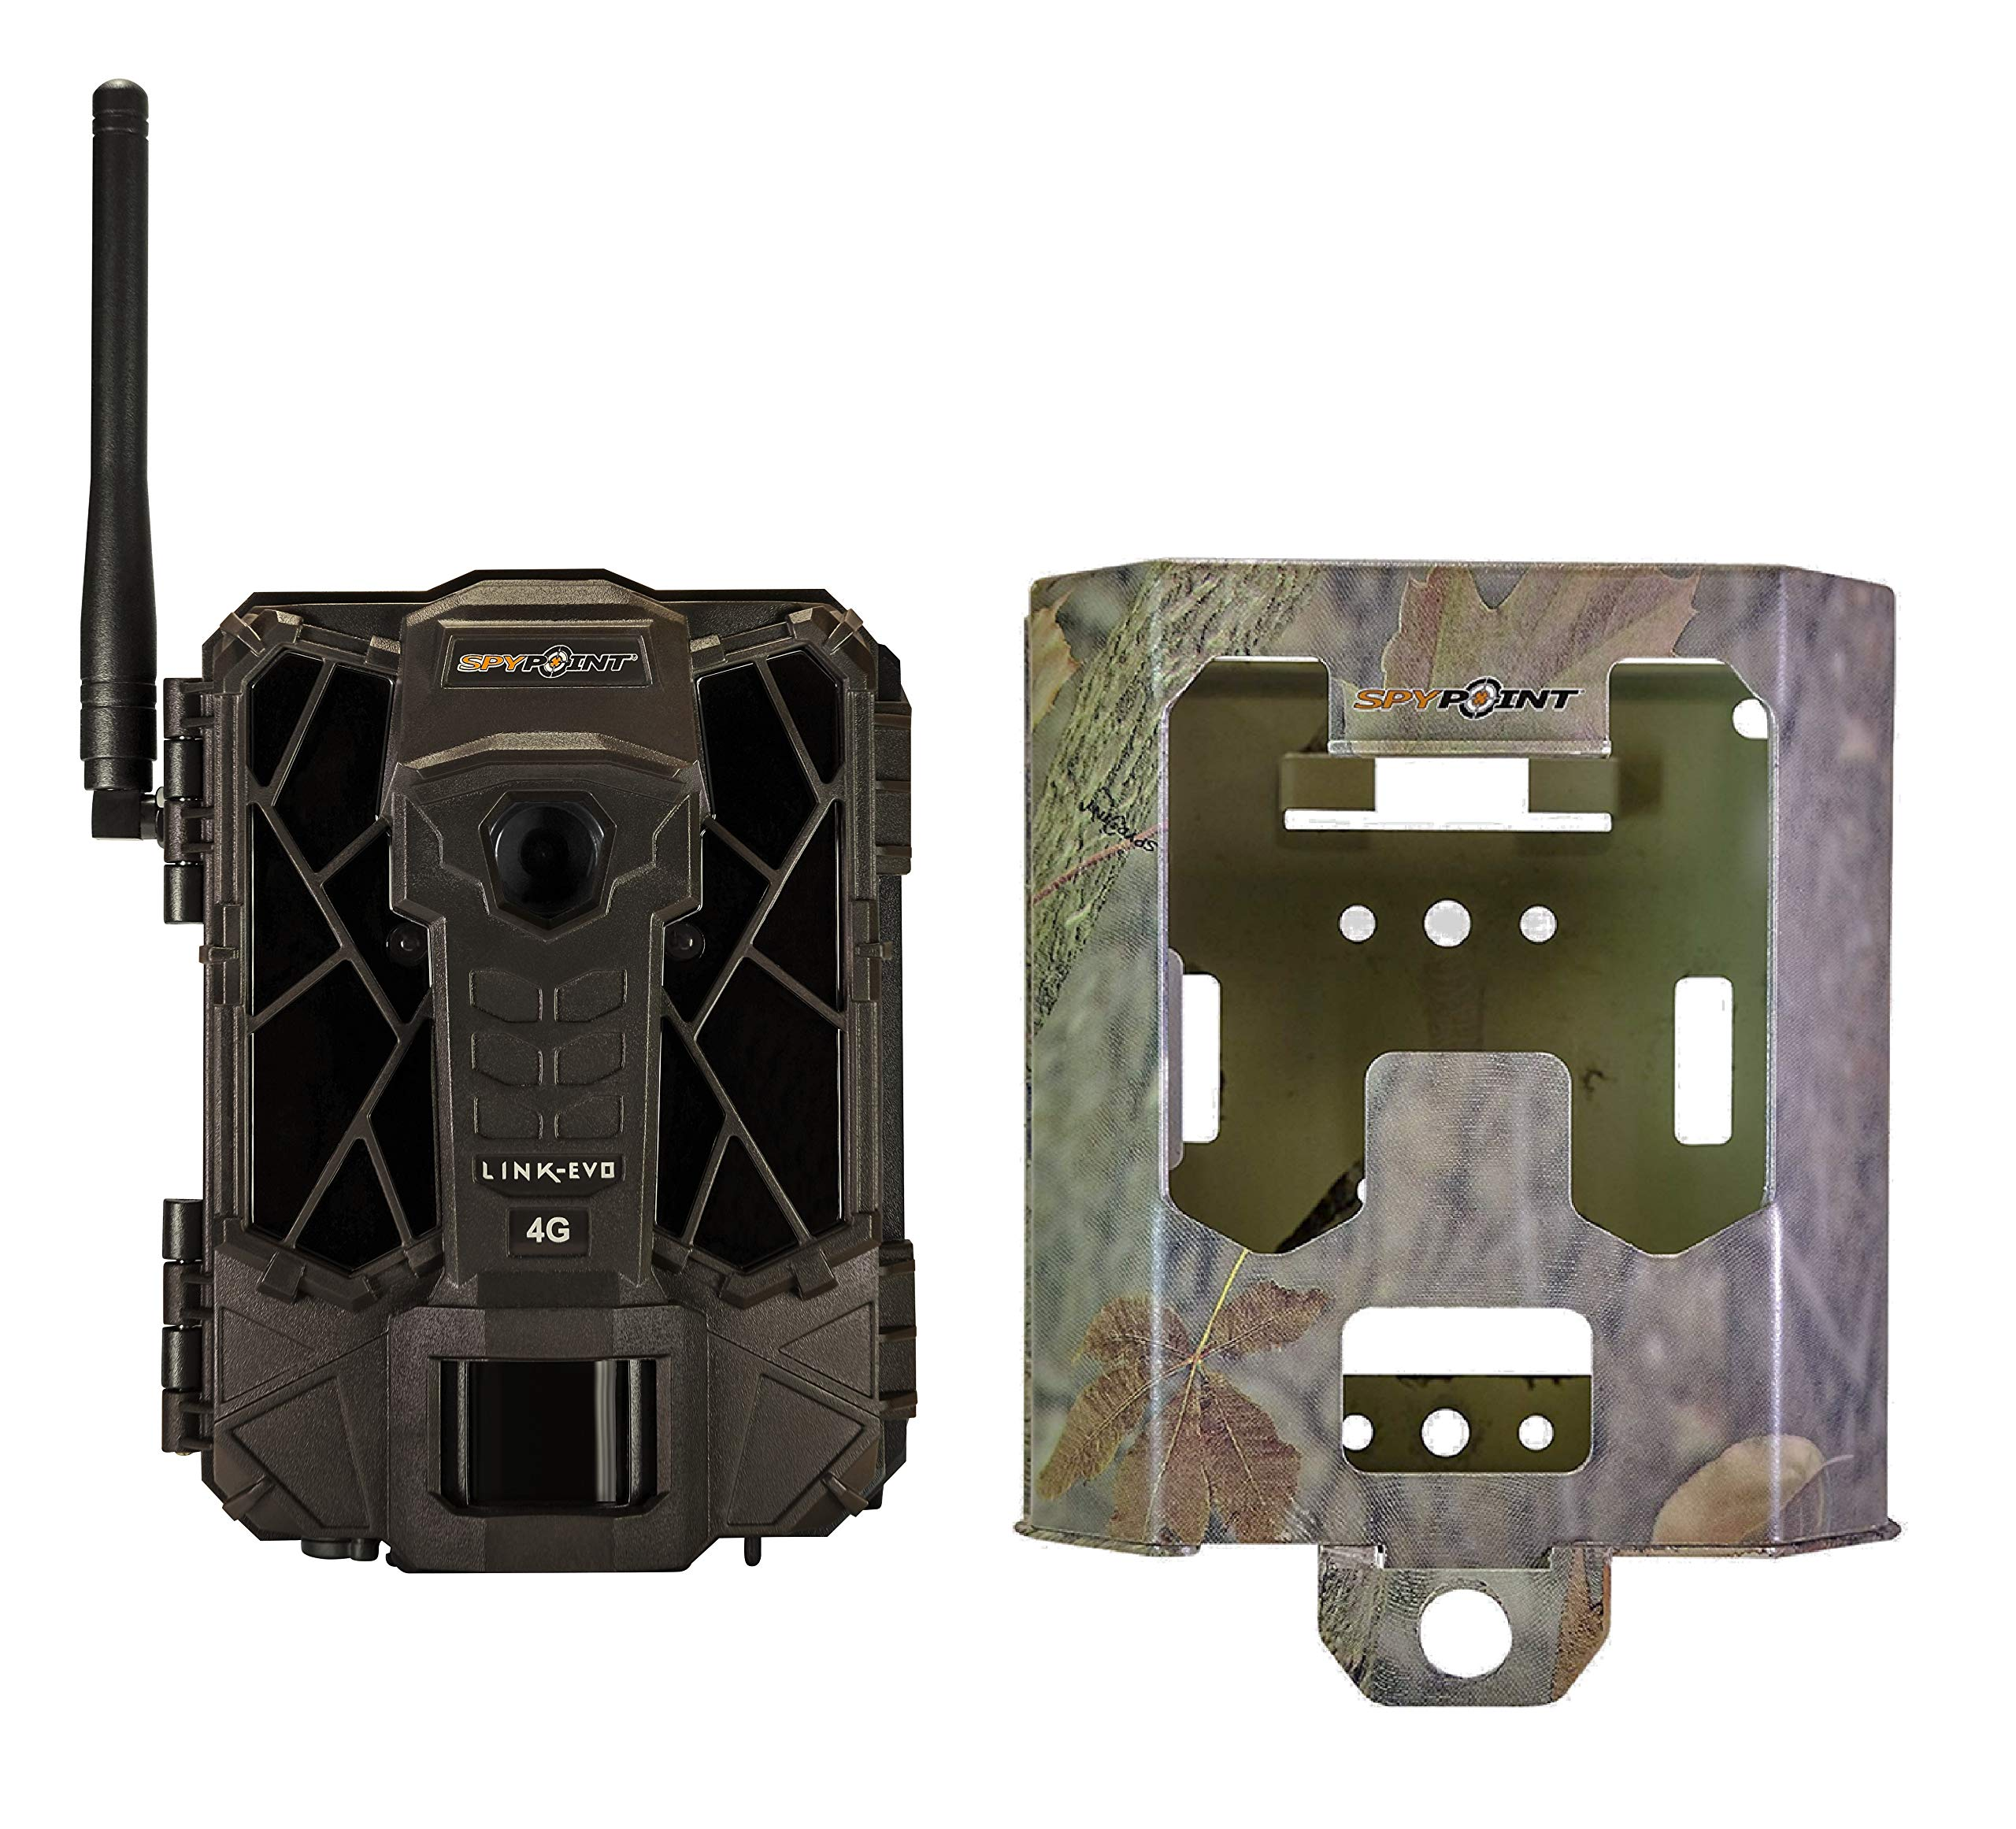 SPYPOINT Link-EVO-V Cellular Trail Camera, 4G/LTE, 12MP HD Video, High Power LEDs&Infrared Boost Tech, 0.3s Trigger Speed, 80' Detect&90' Flash, Easy Setup (Link-EVO-V + SB-200 Security Box) by SPYPOINT